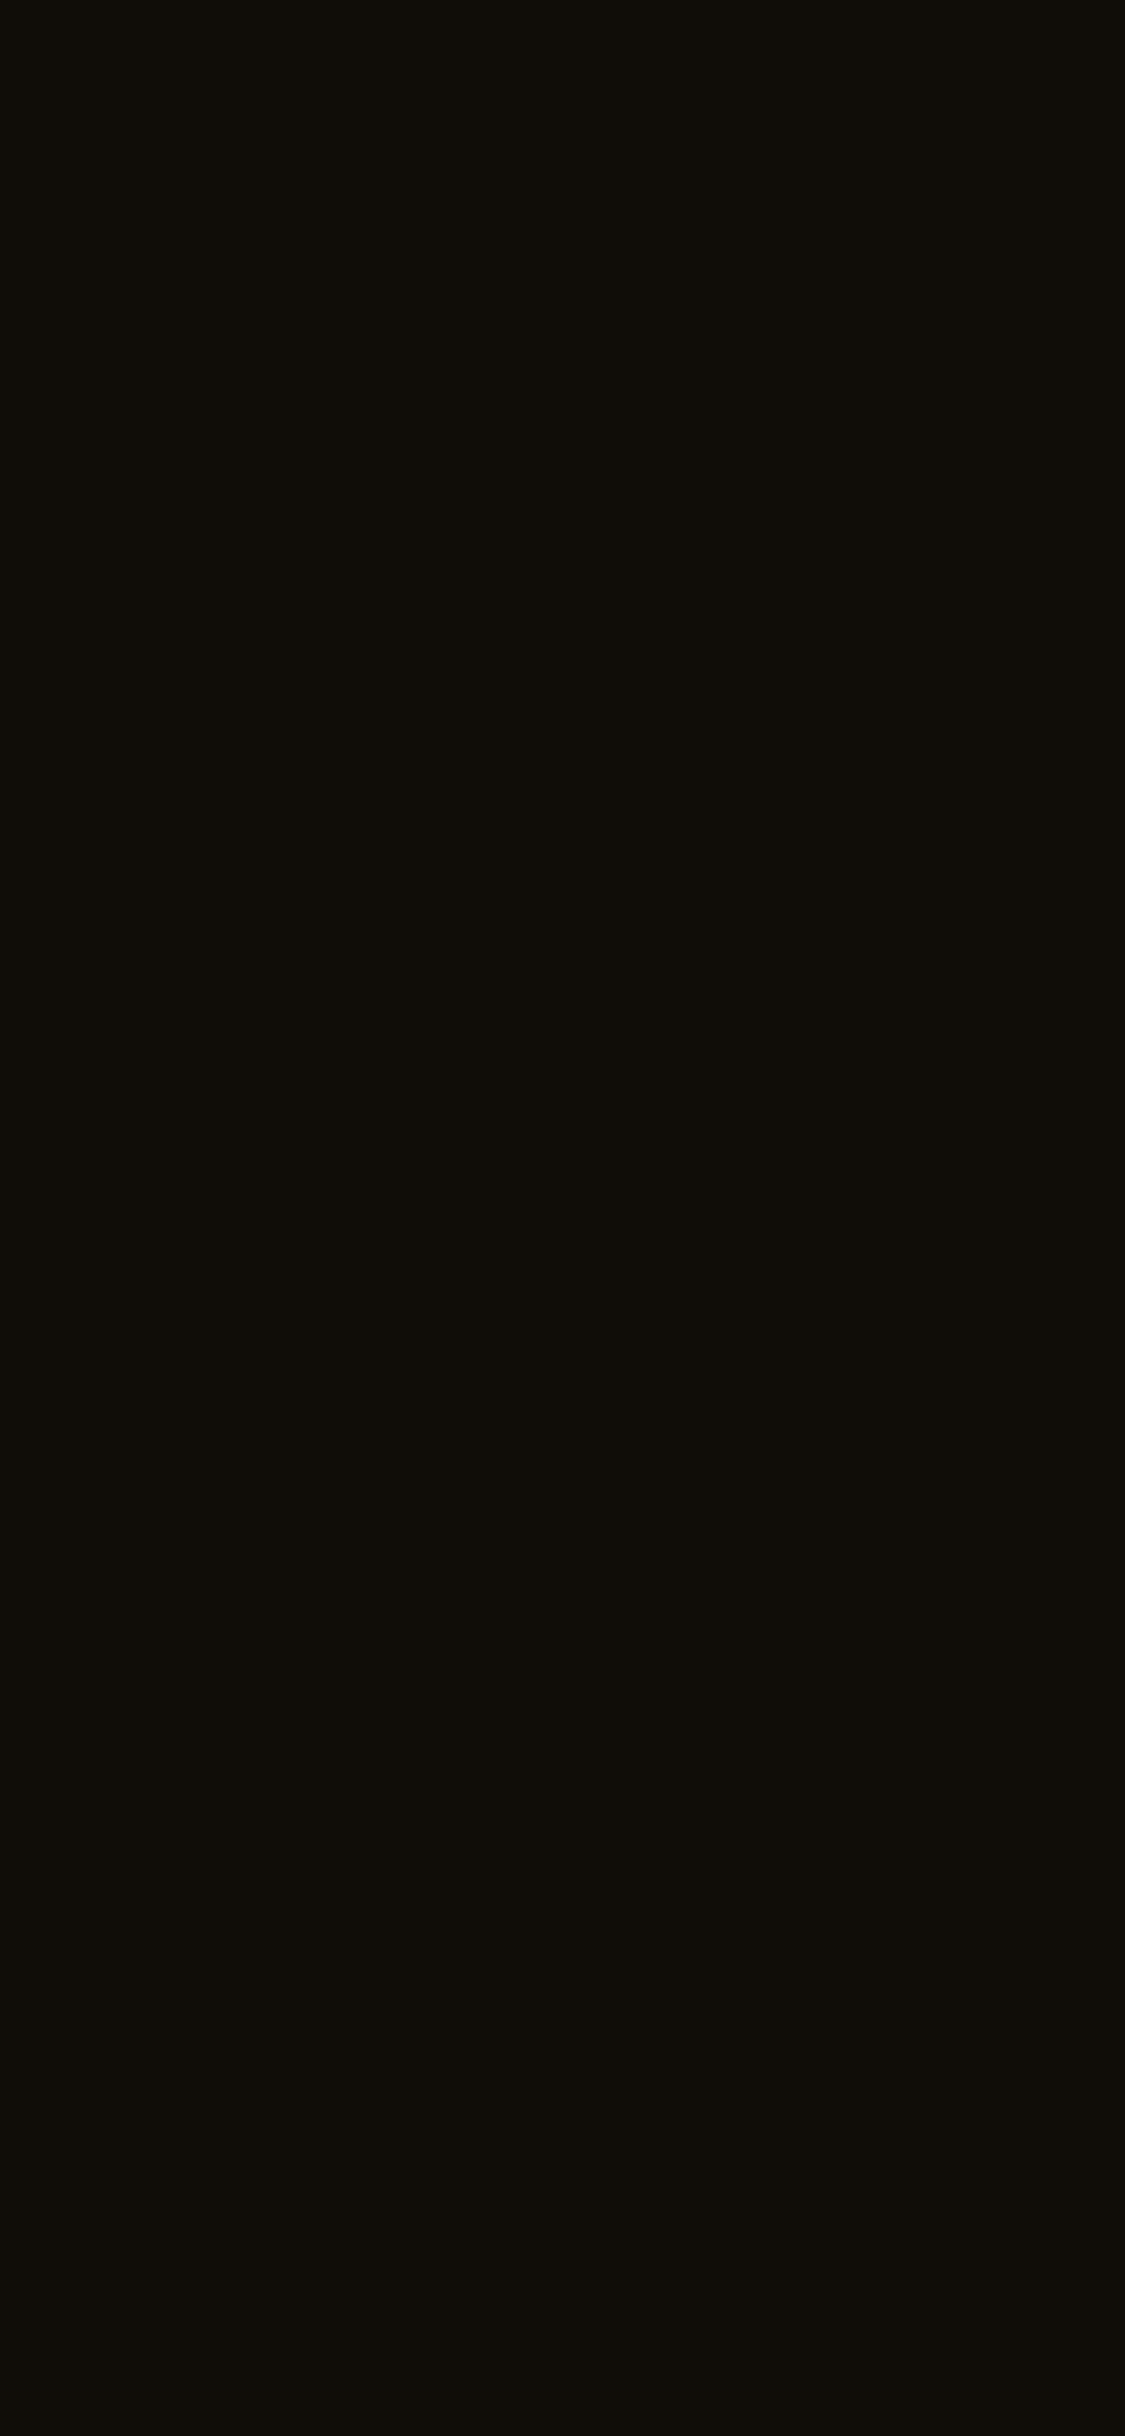 1125x2436 Smoky Black Solid Color Background